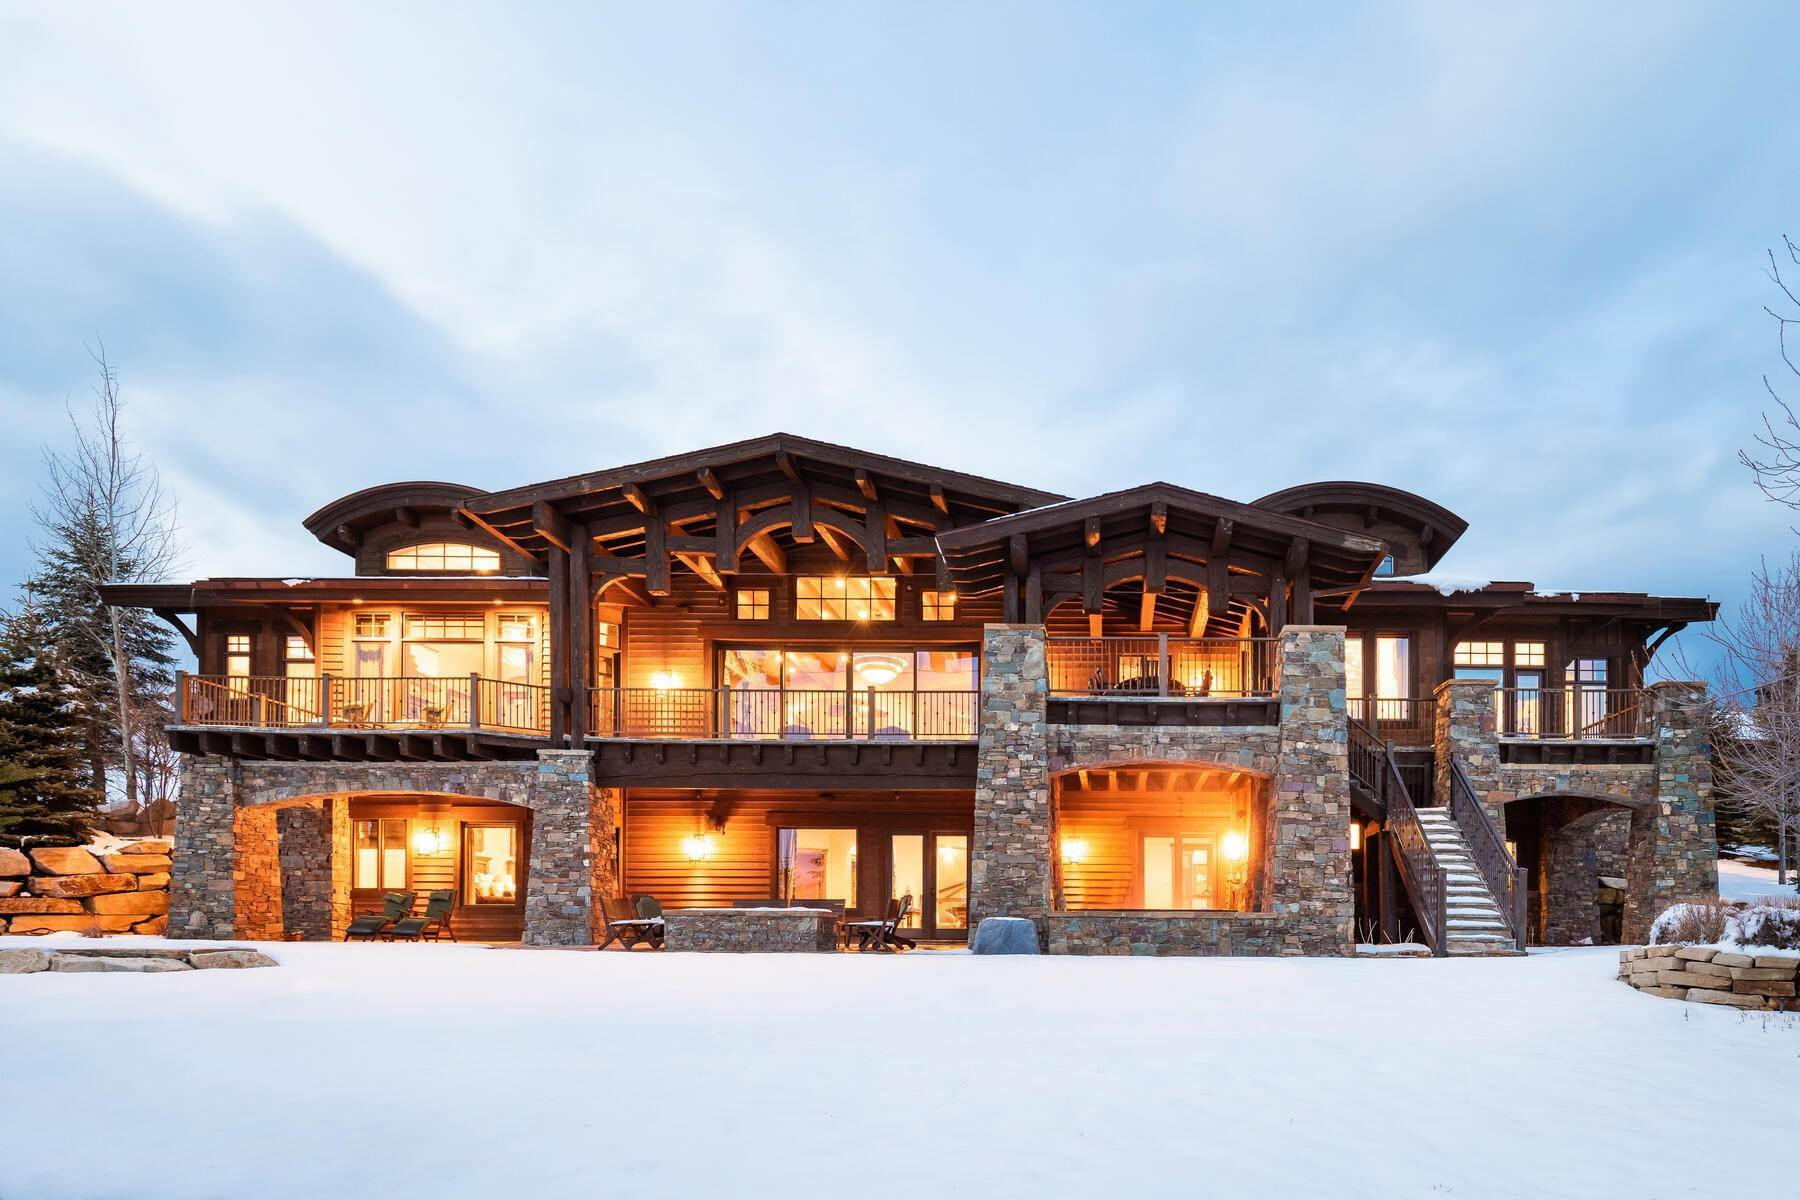 Single Family Homes for Sale at Ralph Lauren Meets Robert Redford - Welcome Home To Promontory's Painted Sky! 8136 N Ranch Club Trail Park City, Utah 84098 United States